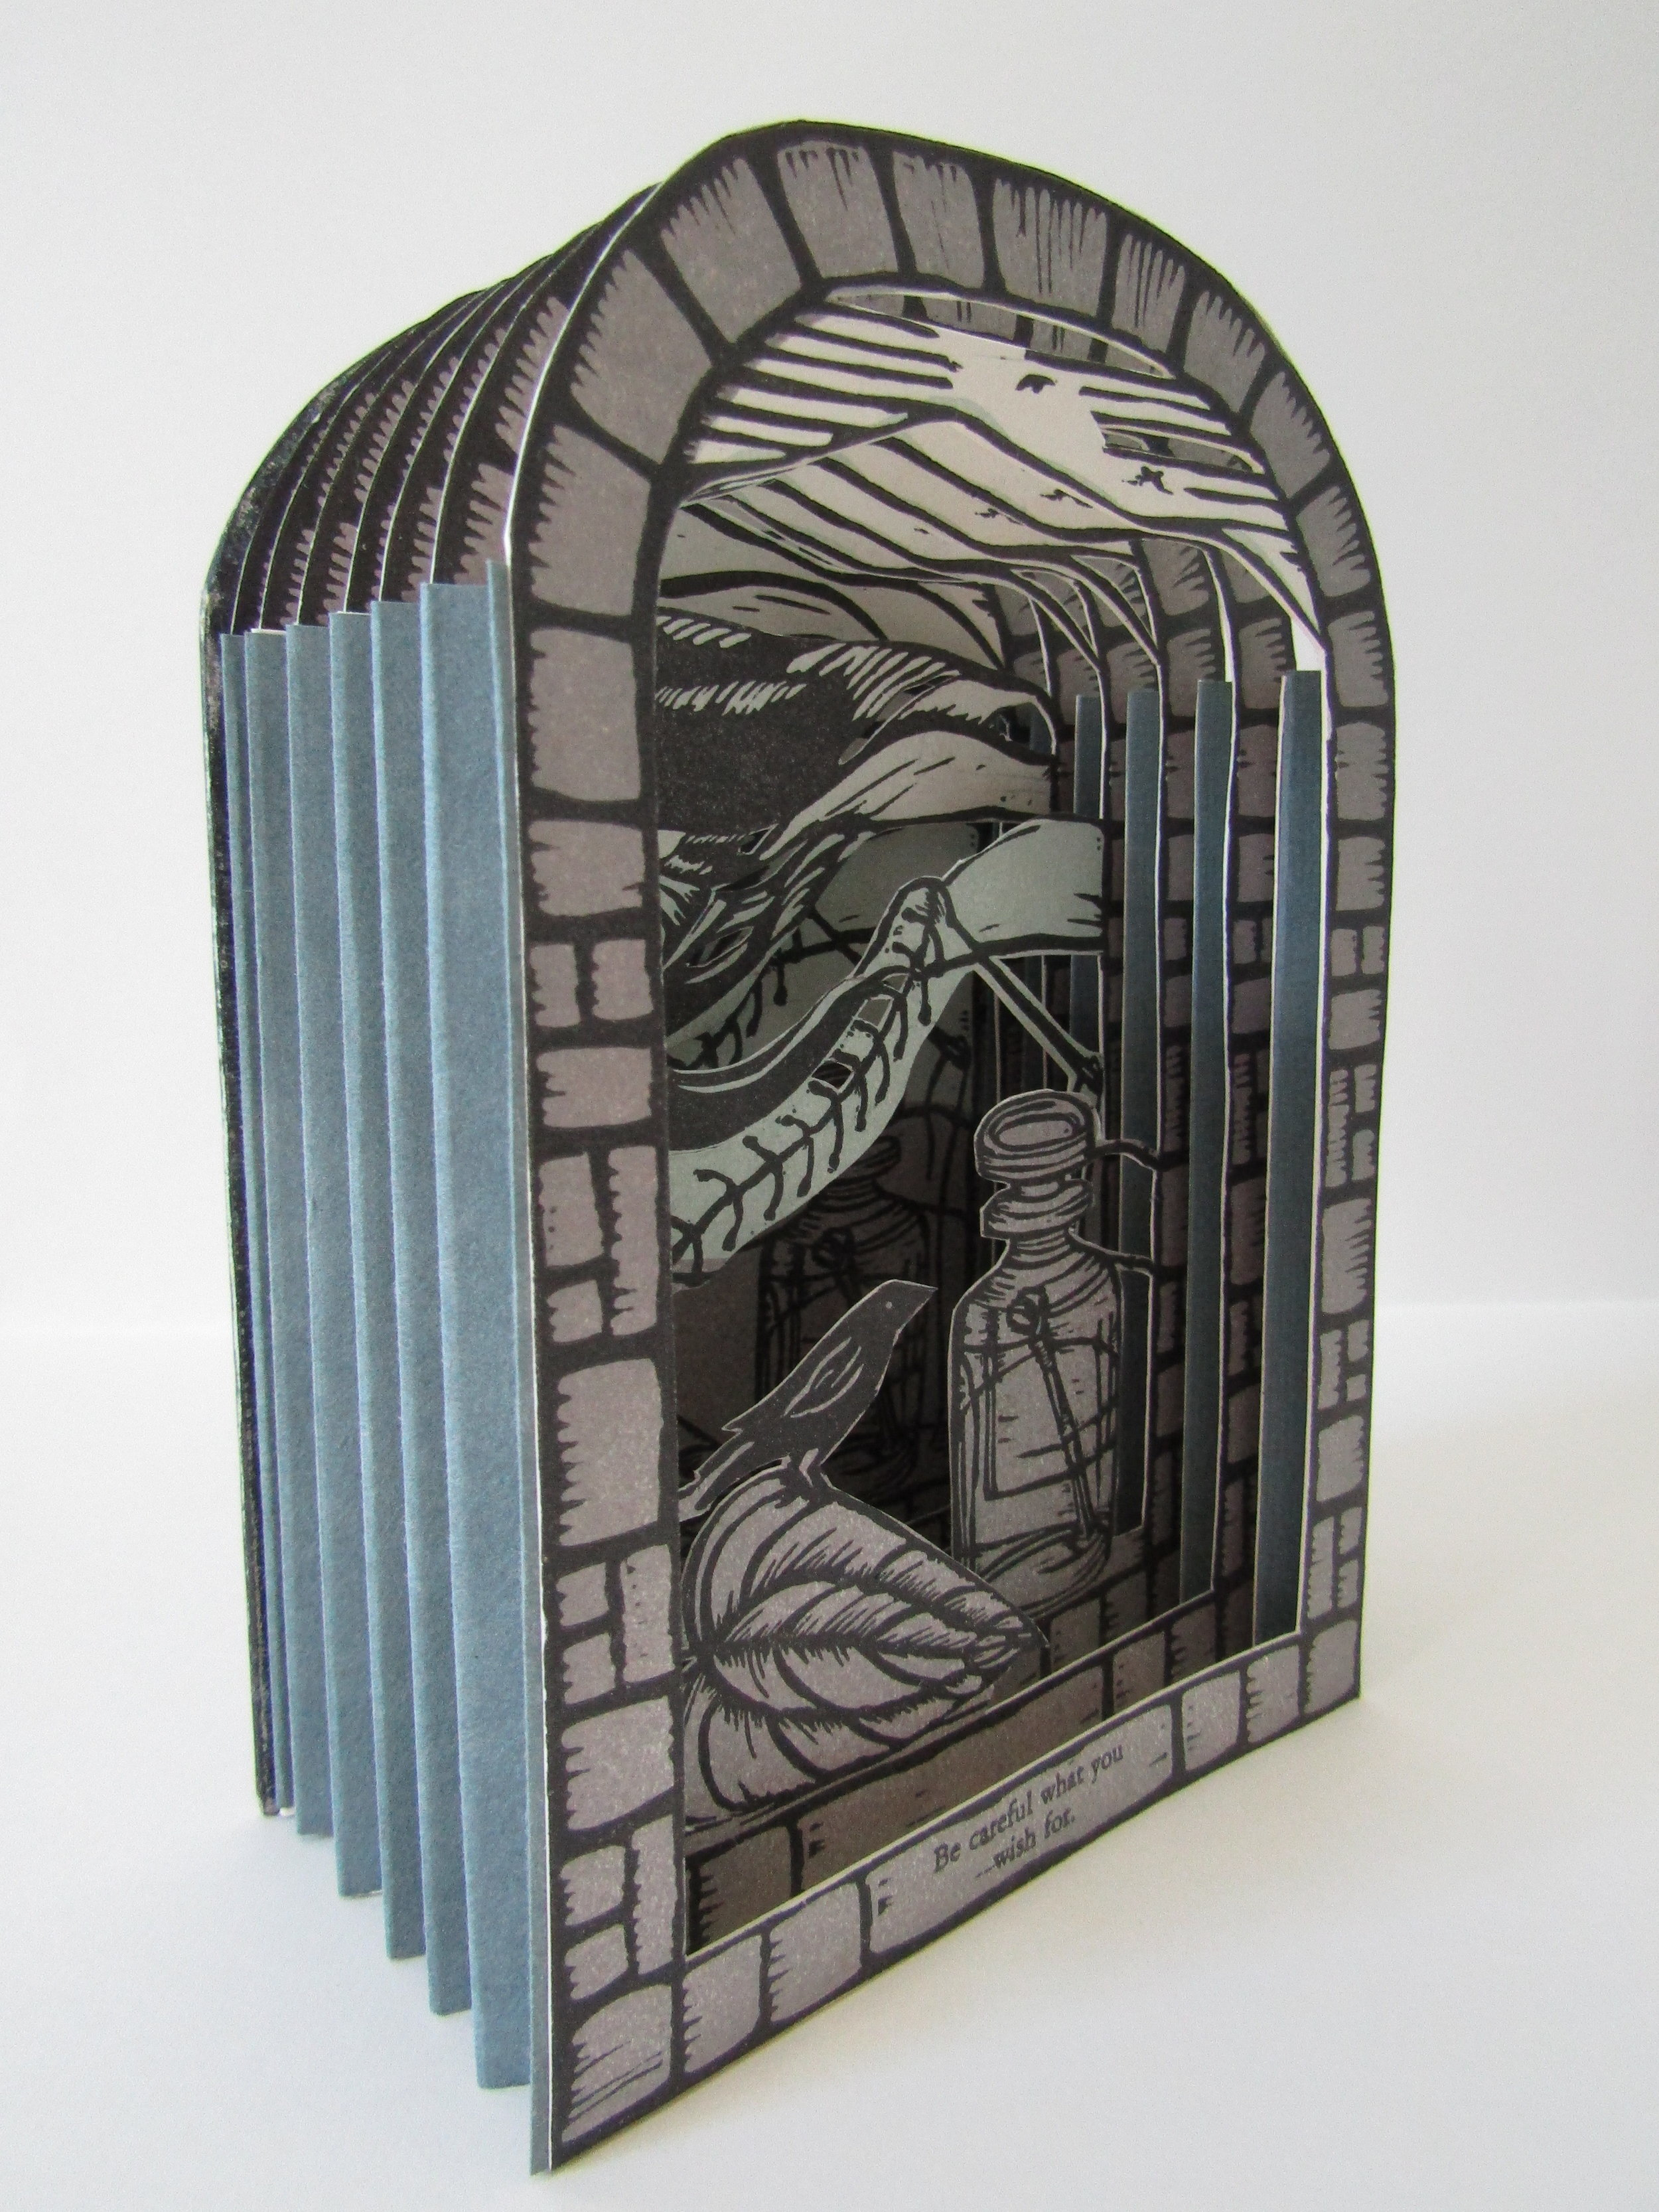 This image shows how the accordion folded papers hold the book together at the sides of the assembled book. This also shows how the pages extend out creating the layered interior pages.